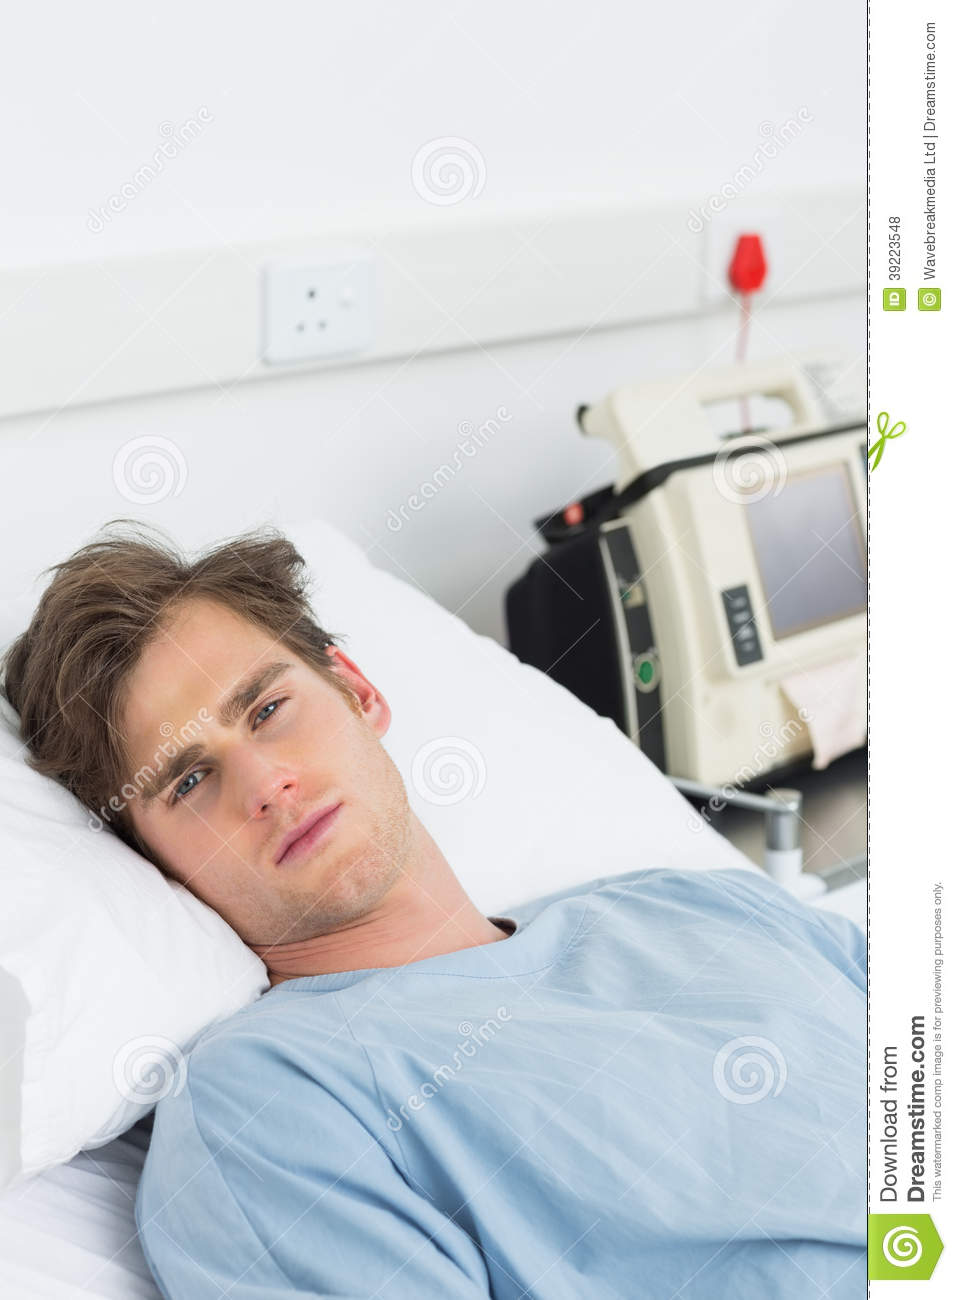 Images Of Sick Old Me In Hospital Bed : Portrait of young male sick man lying in hospital bed.